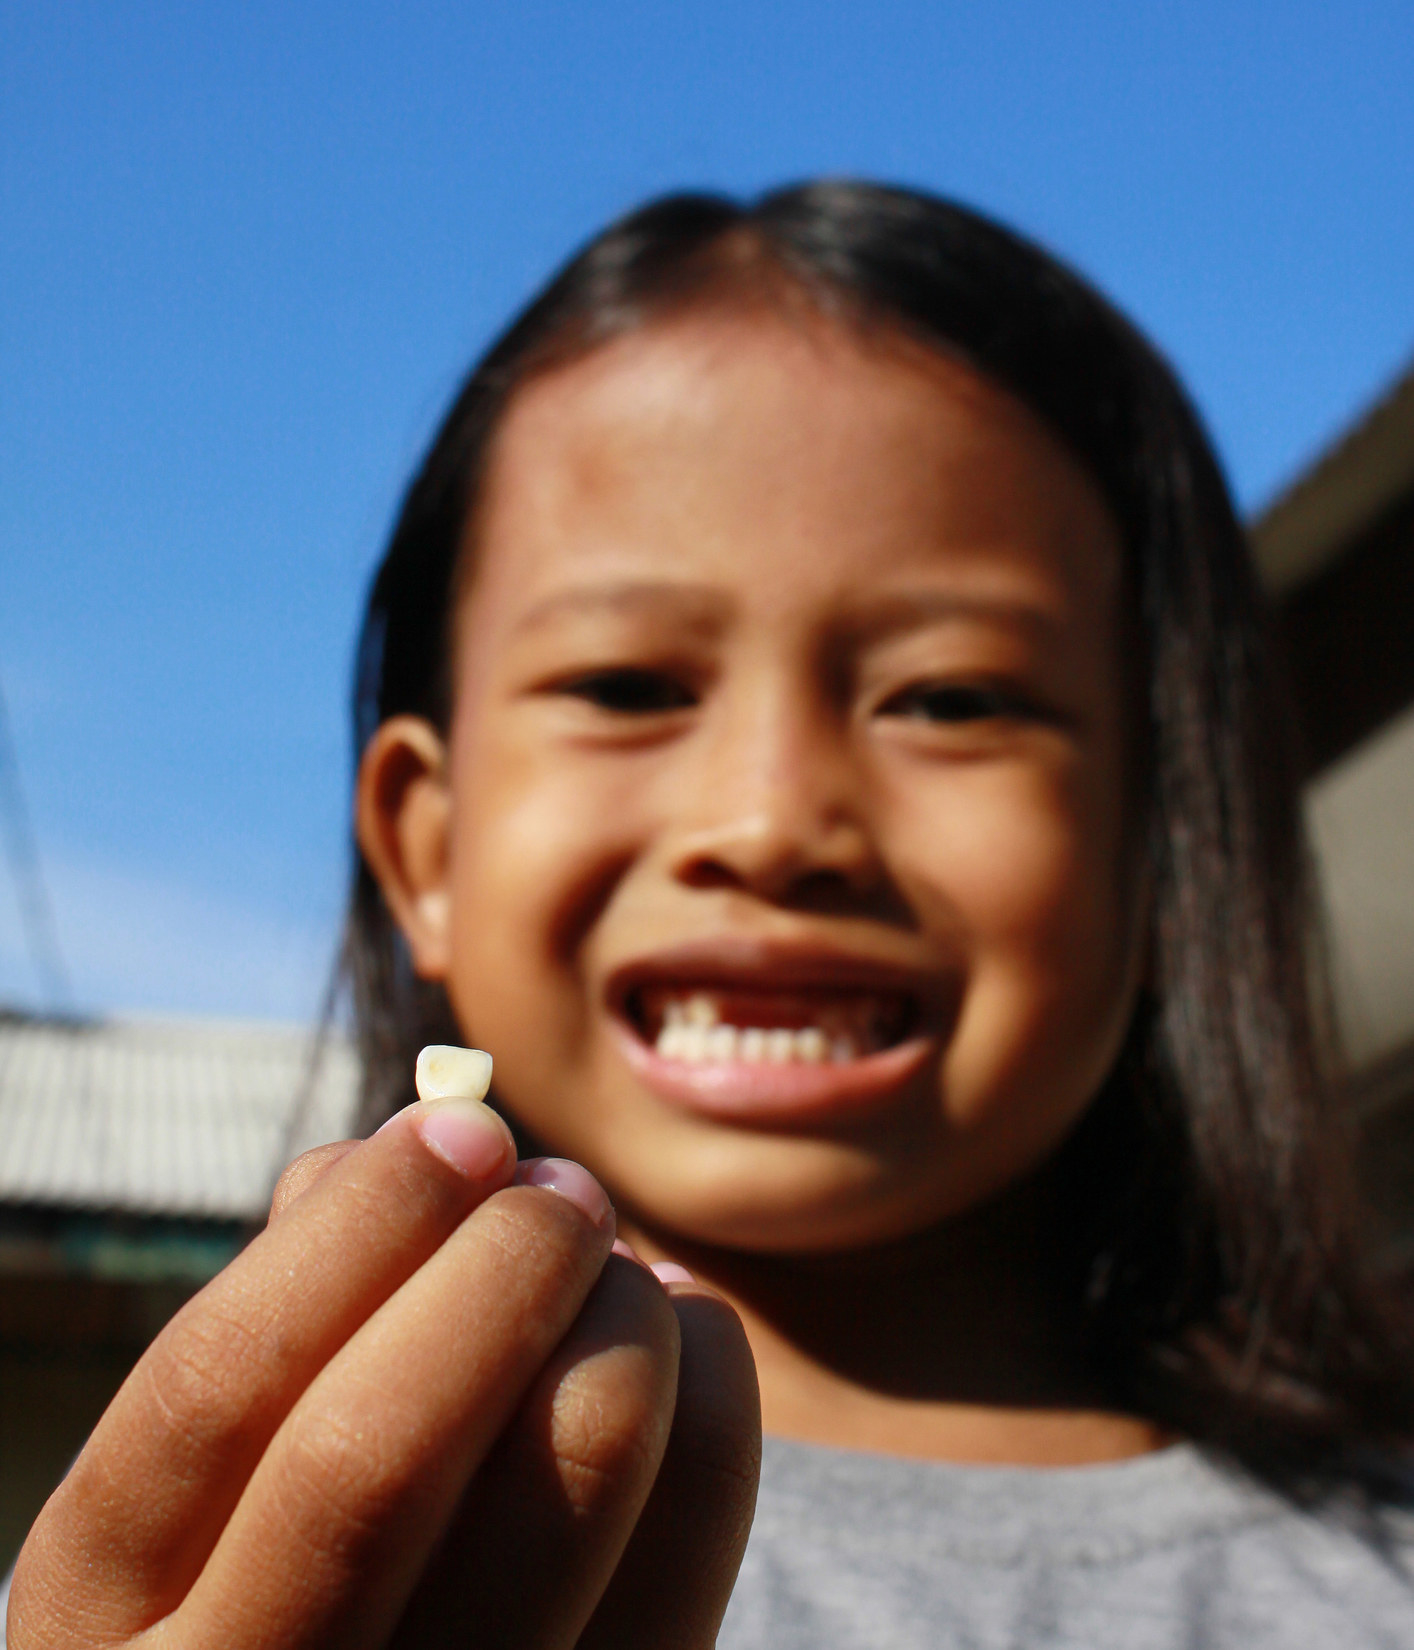 a child holding their missing tooth